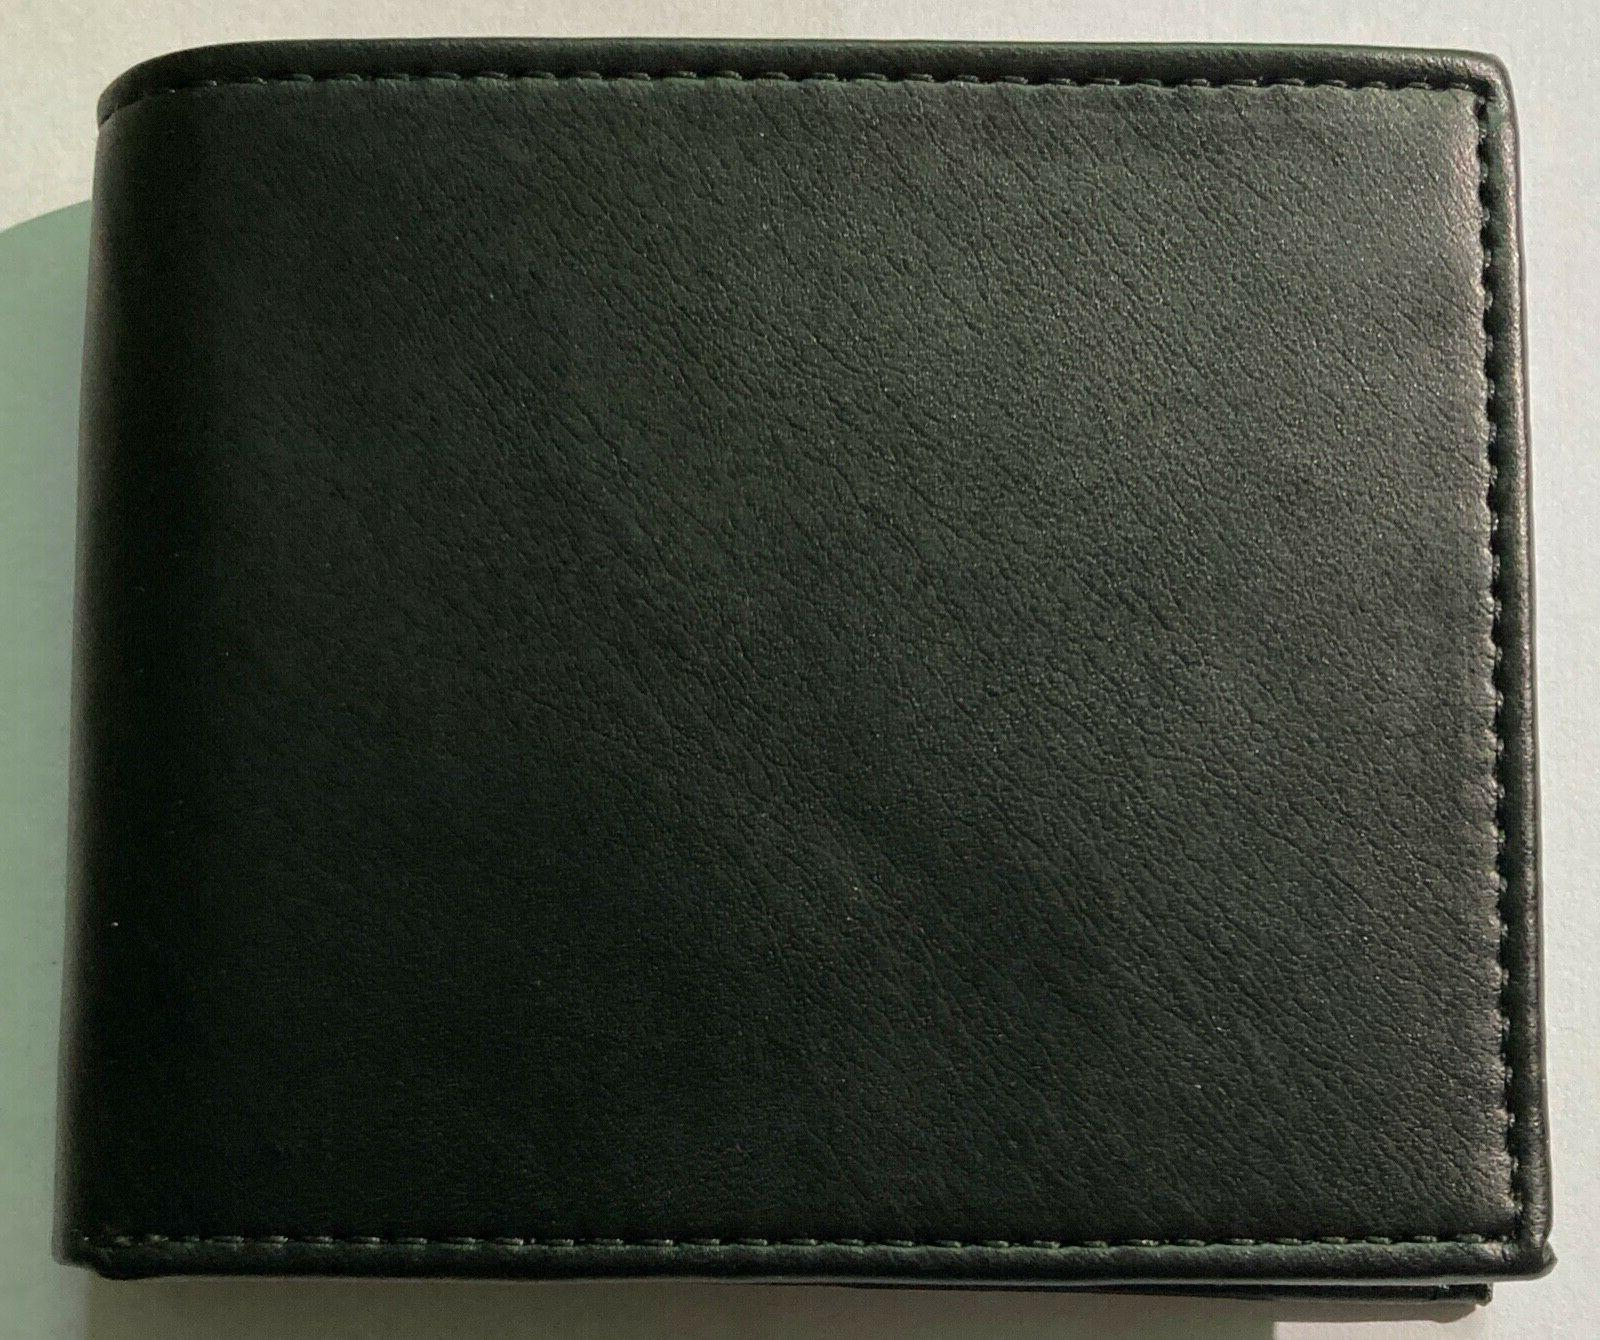 NEW Levi's Bi-Fold Wallet with RFID and Holder Black